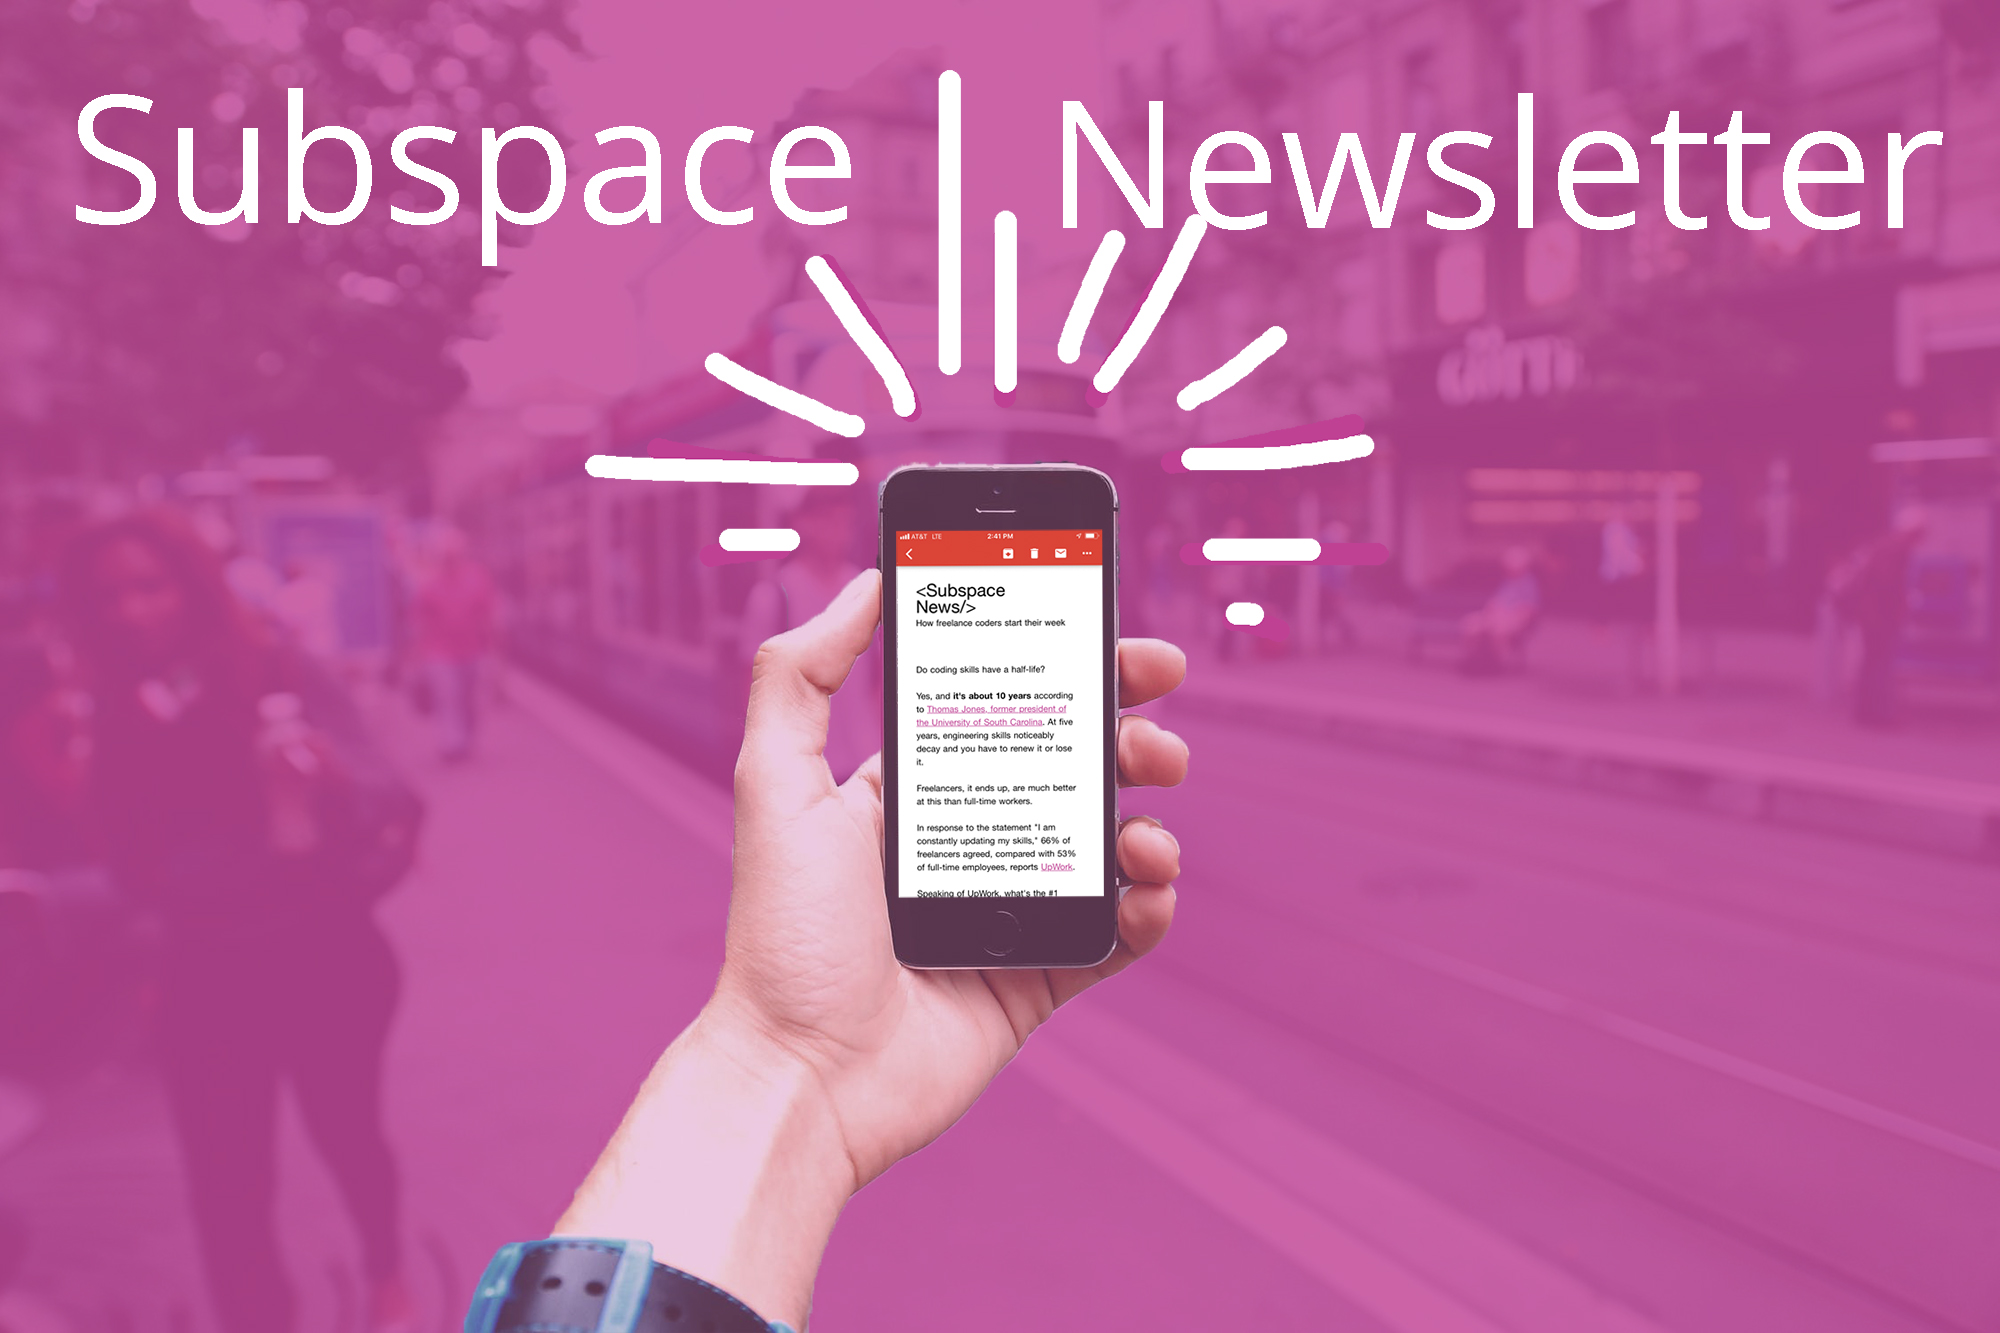 subspace newsletter